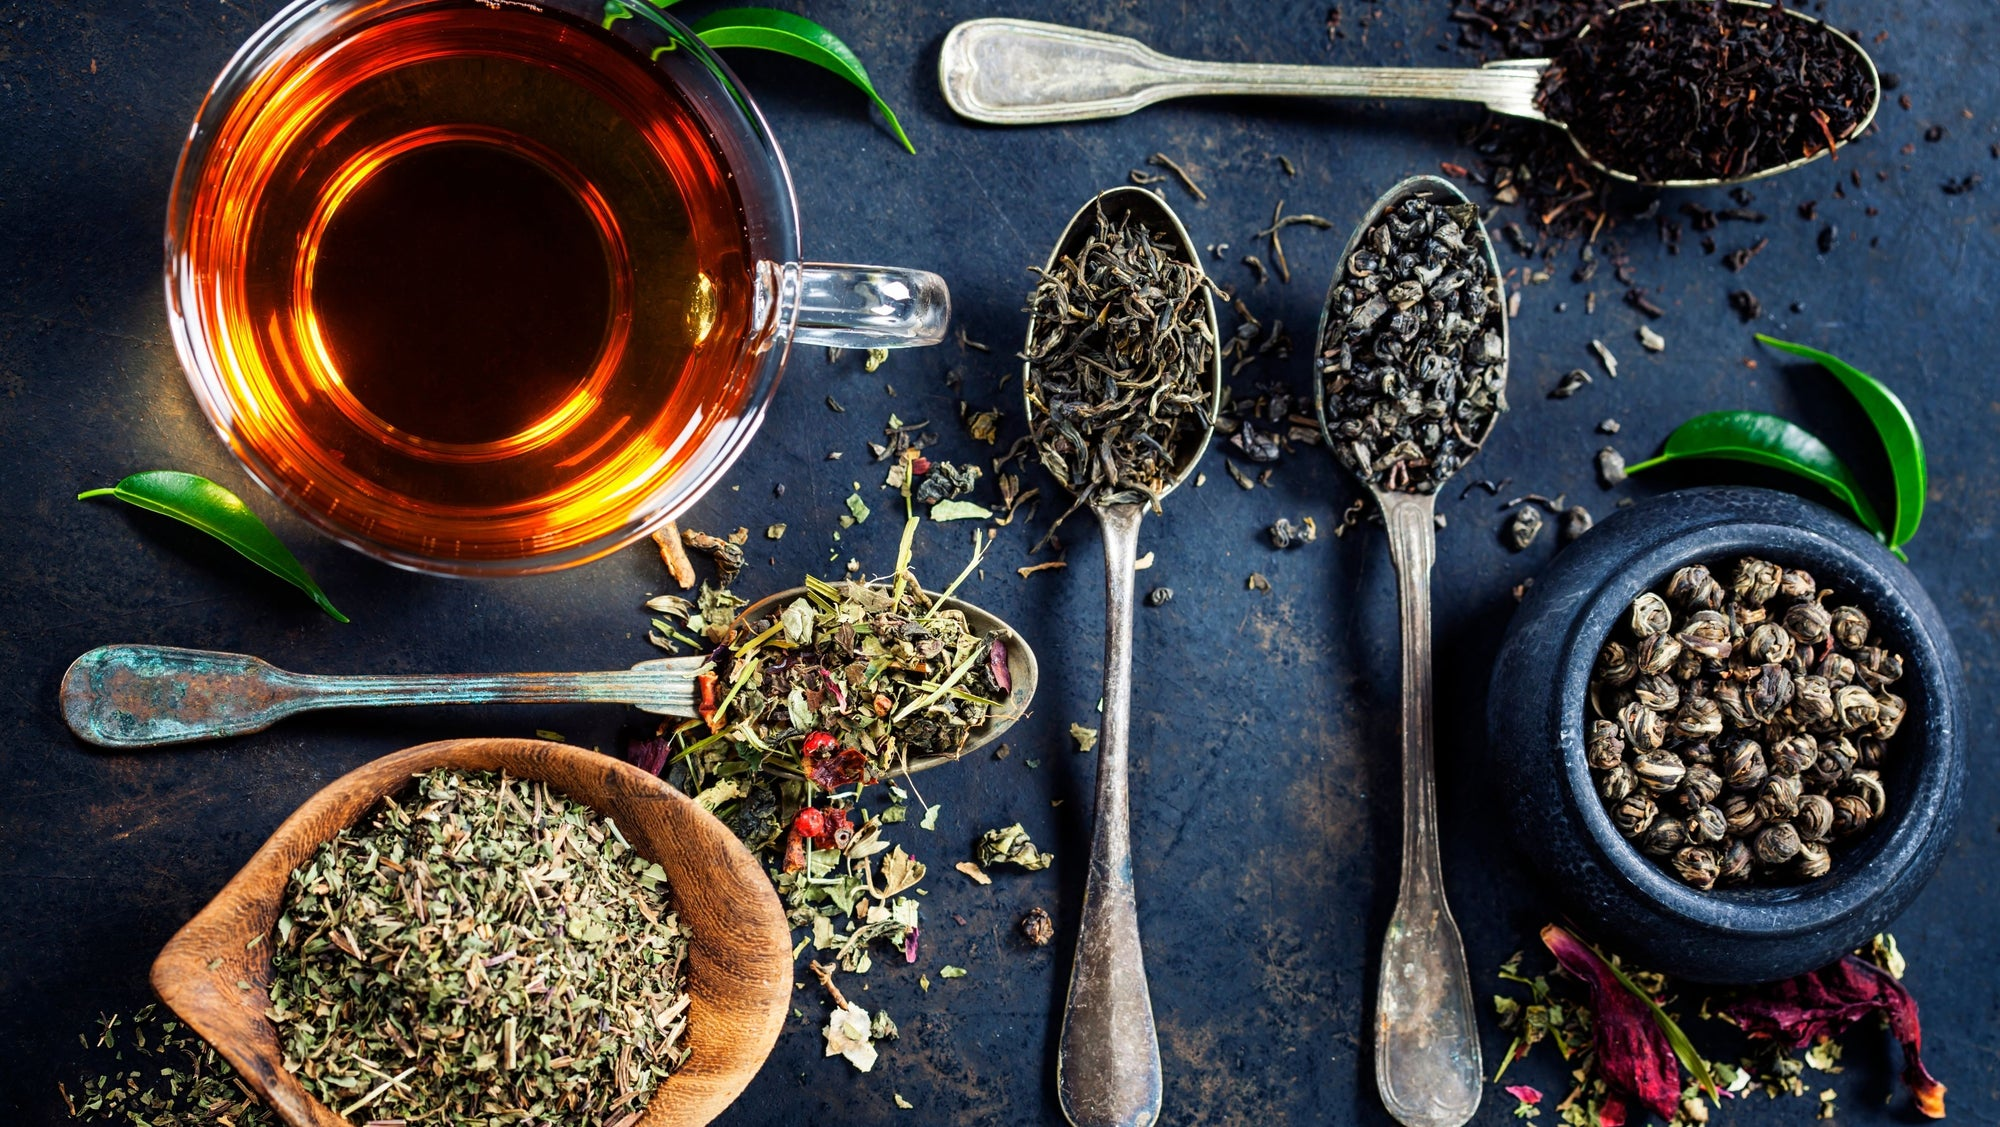 20 FAQs about tea